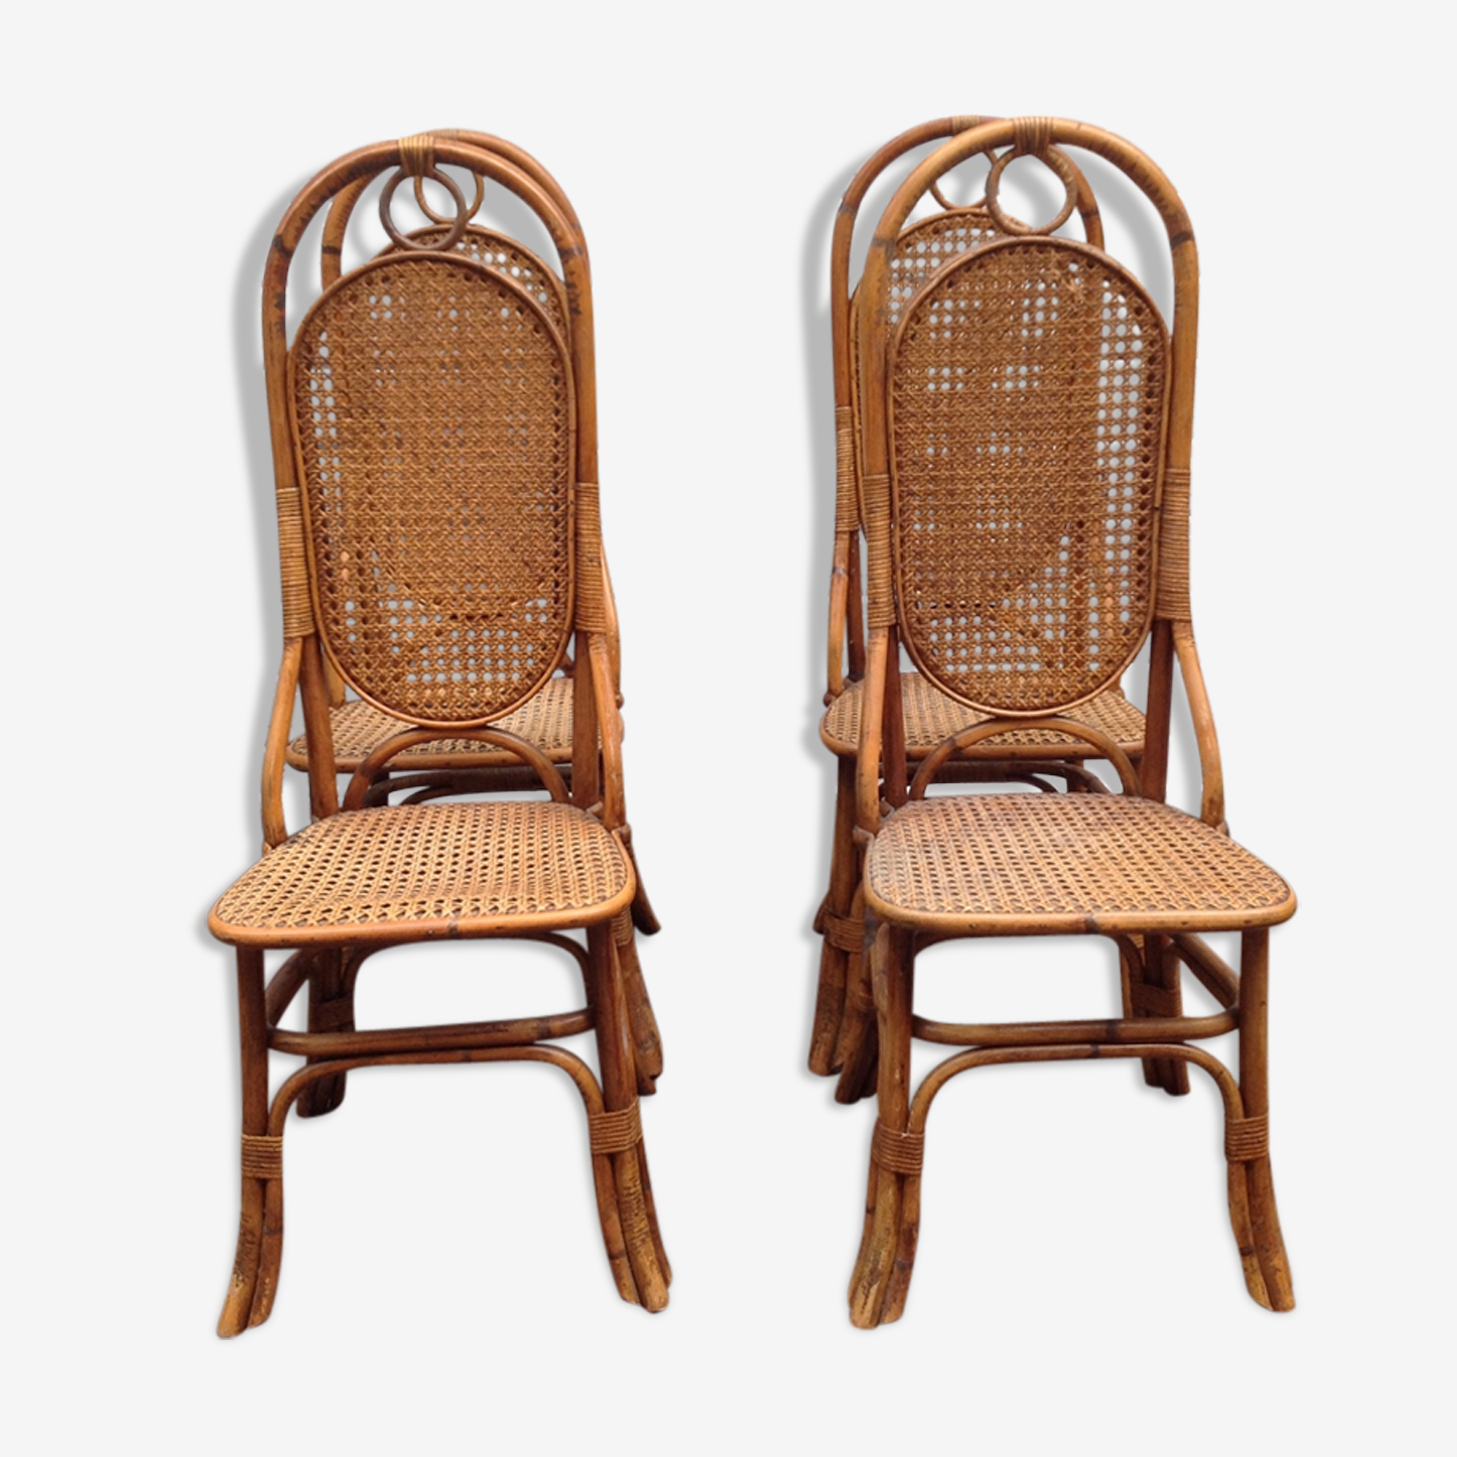 Chaises rotin et cannage